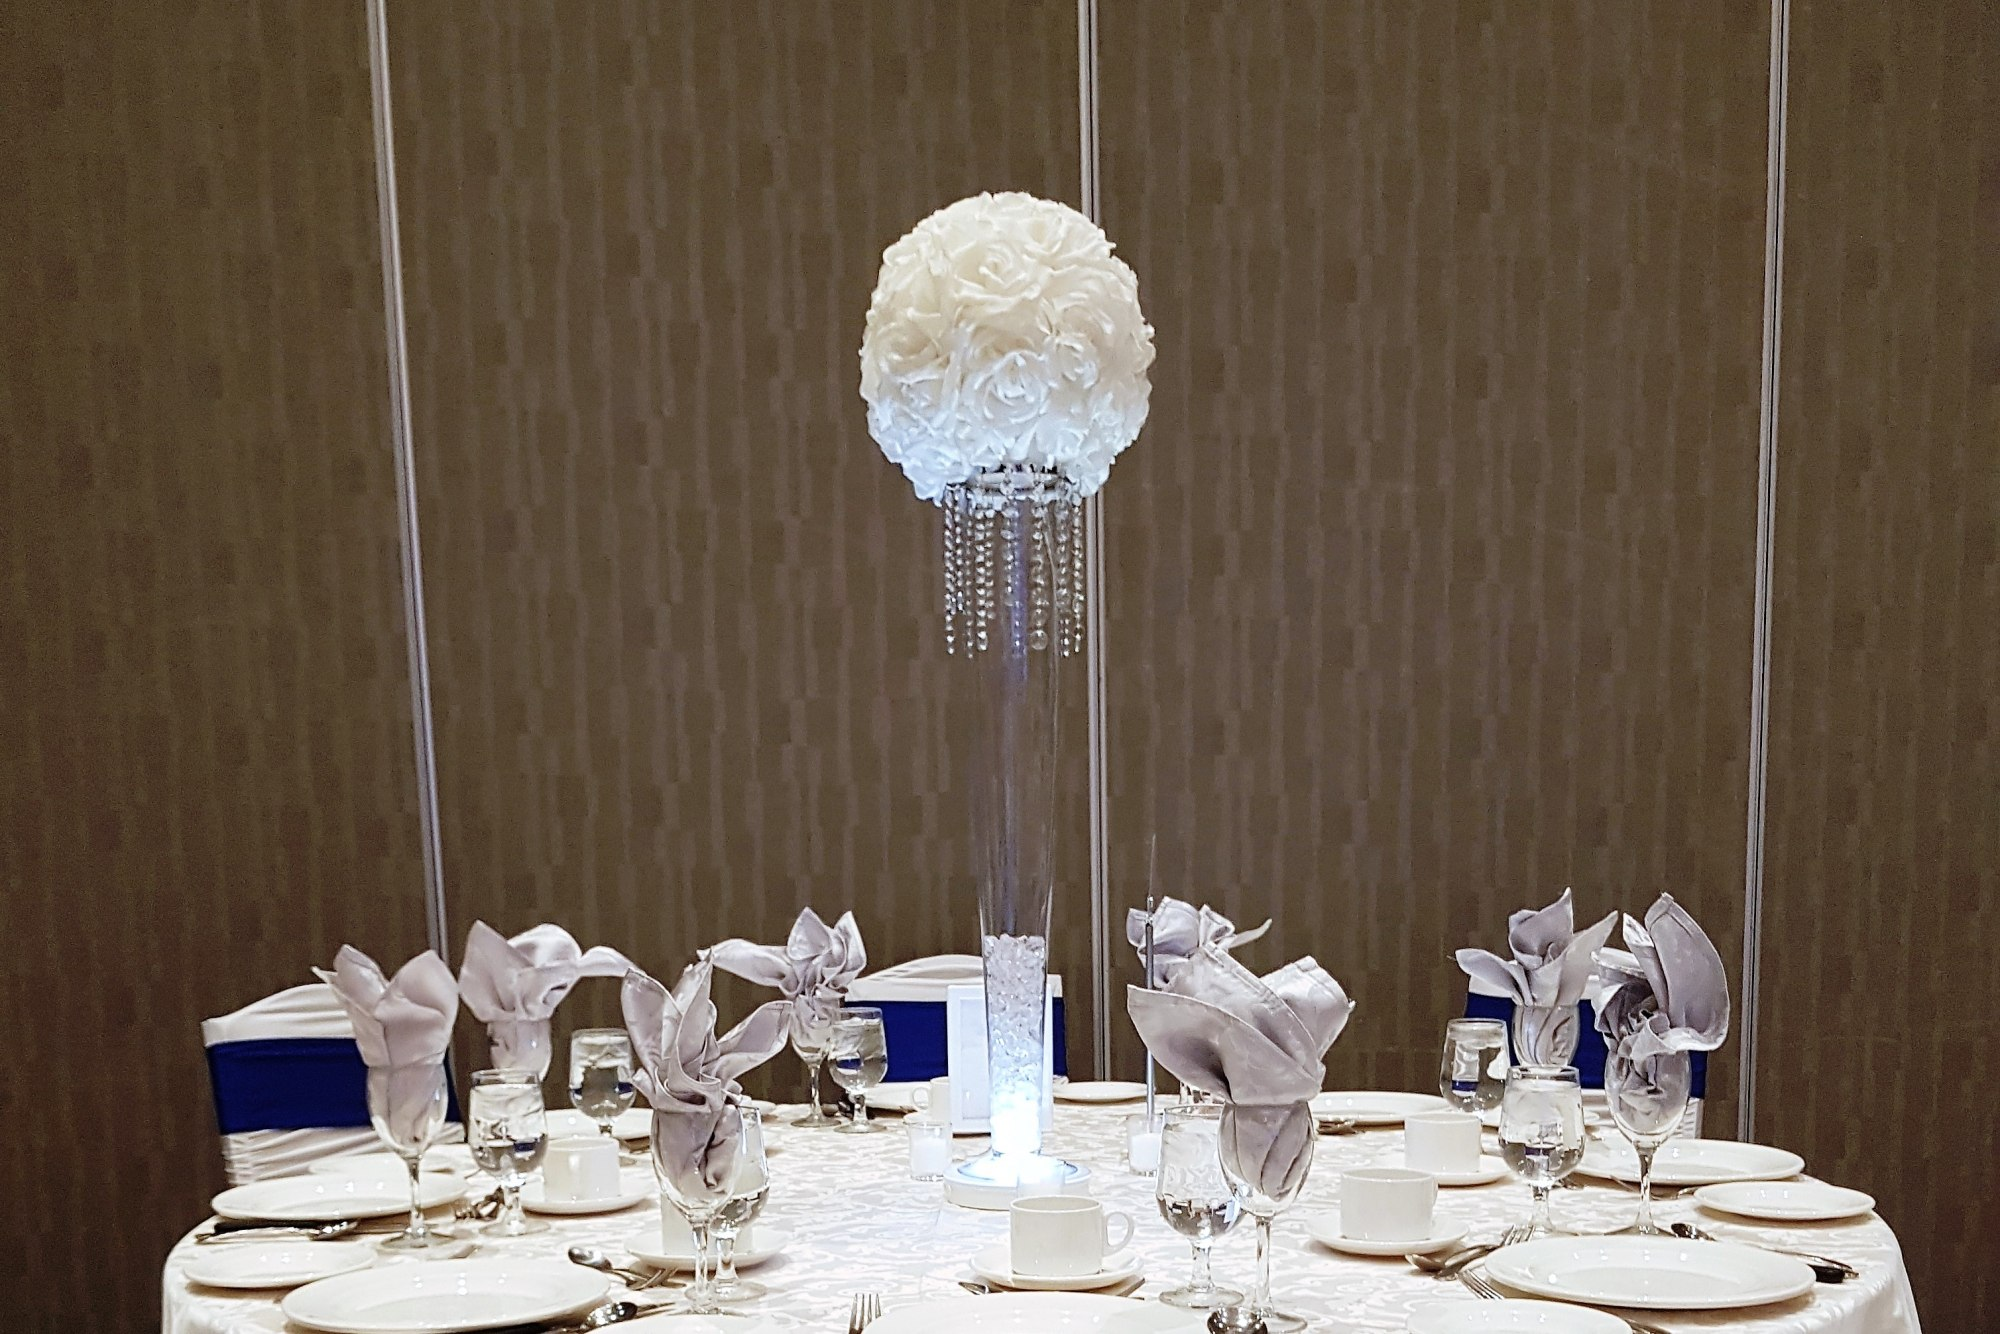 White Rose Ball Centrepiece with Mini Crystal Shade